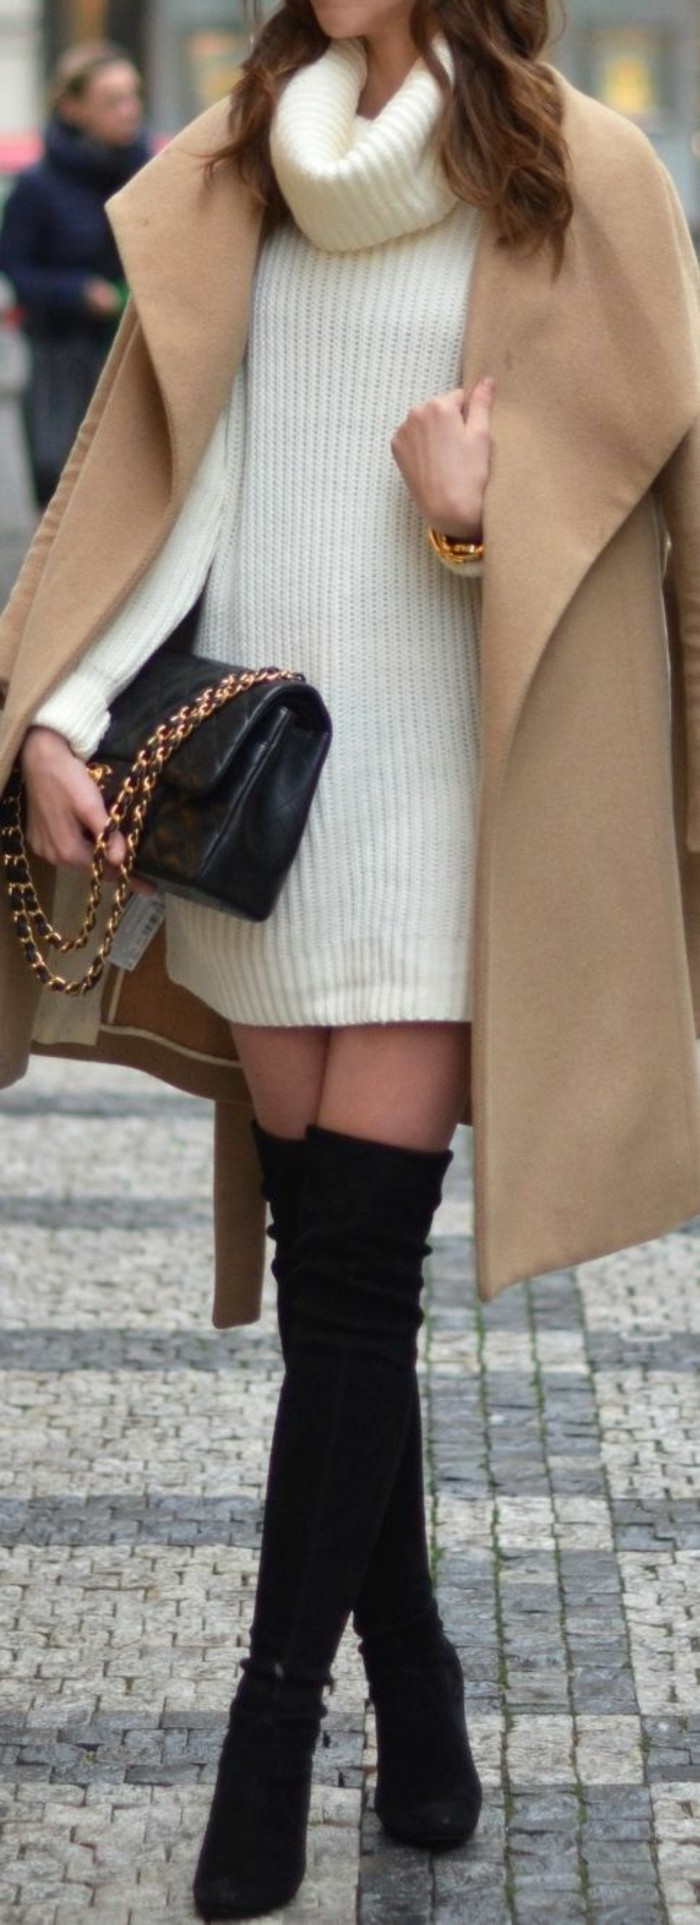 robe-pull-col-roule-elegante-bottes-cavalieres-manteau-camel